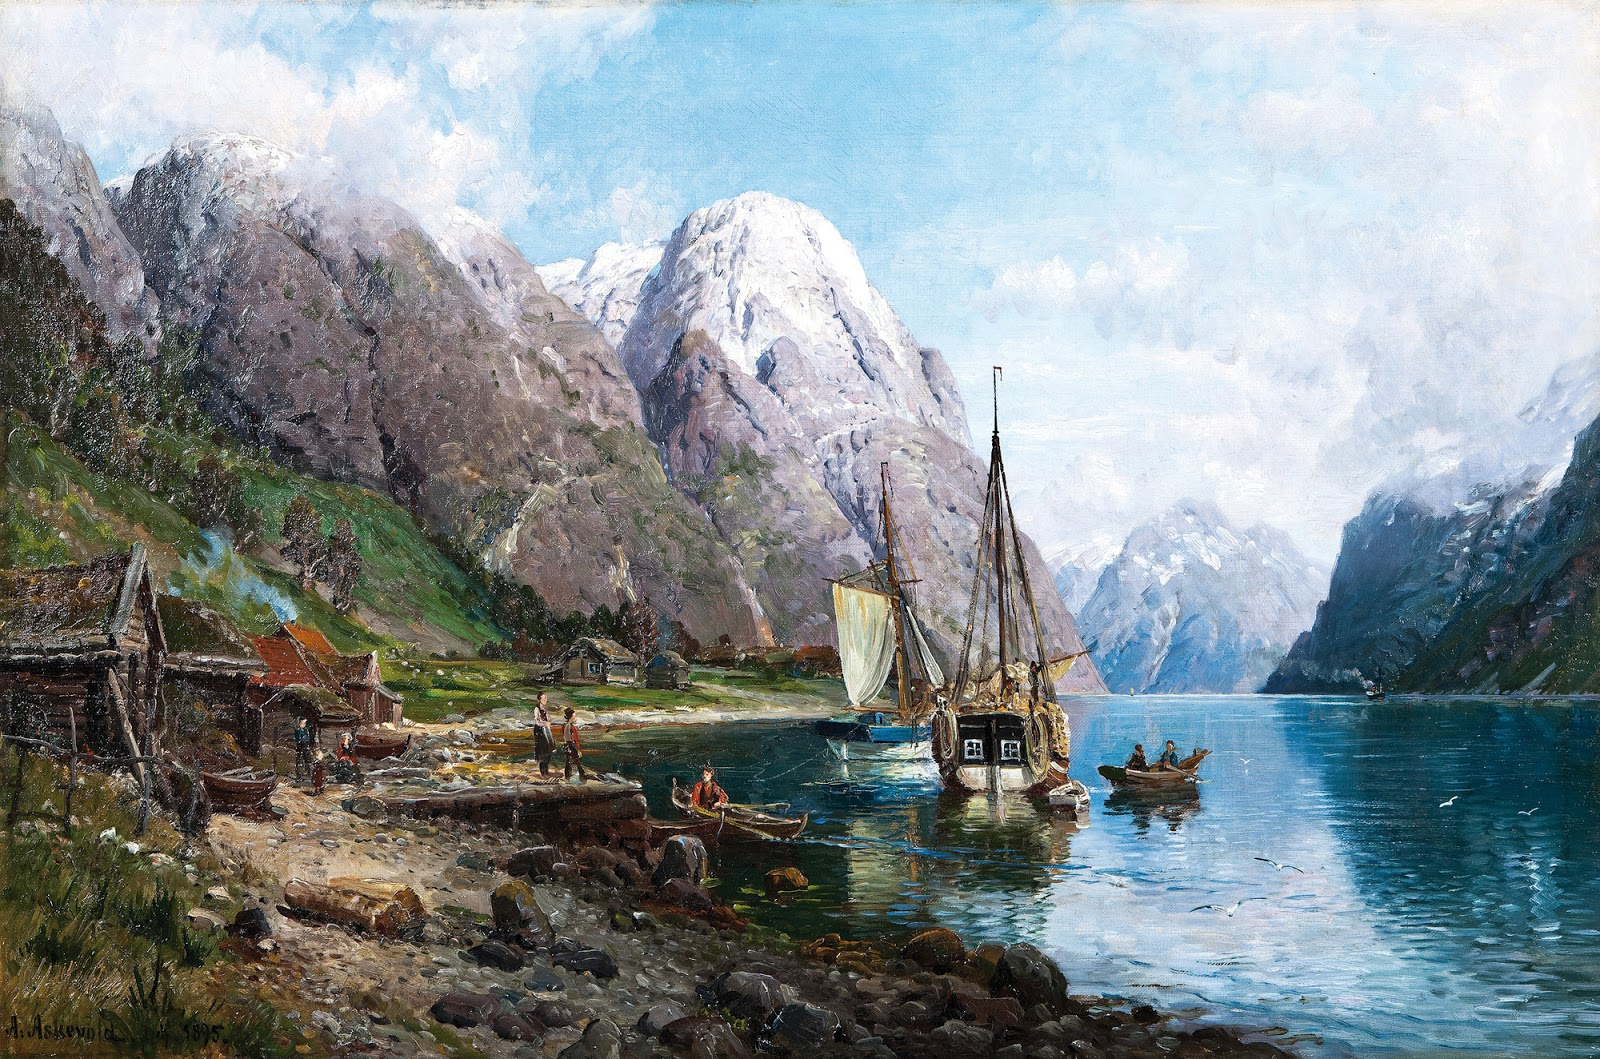 3 Anders Monsen Askevold     Harbor in the Sognefjord (also known as From a Harbor in the Sognefjord).jpg